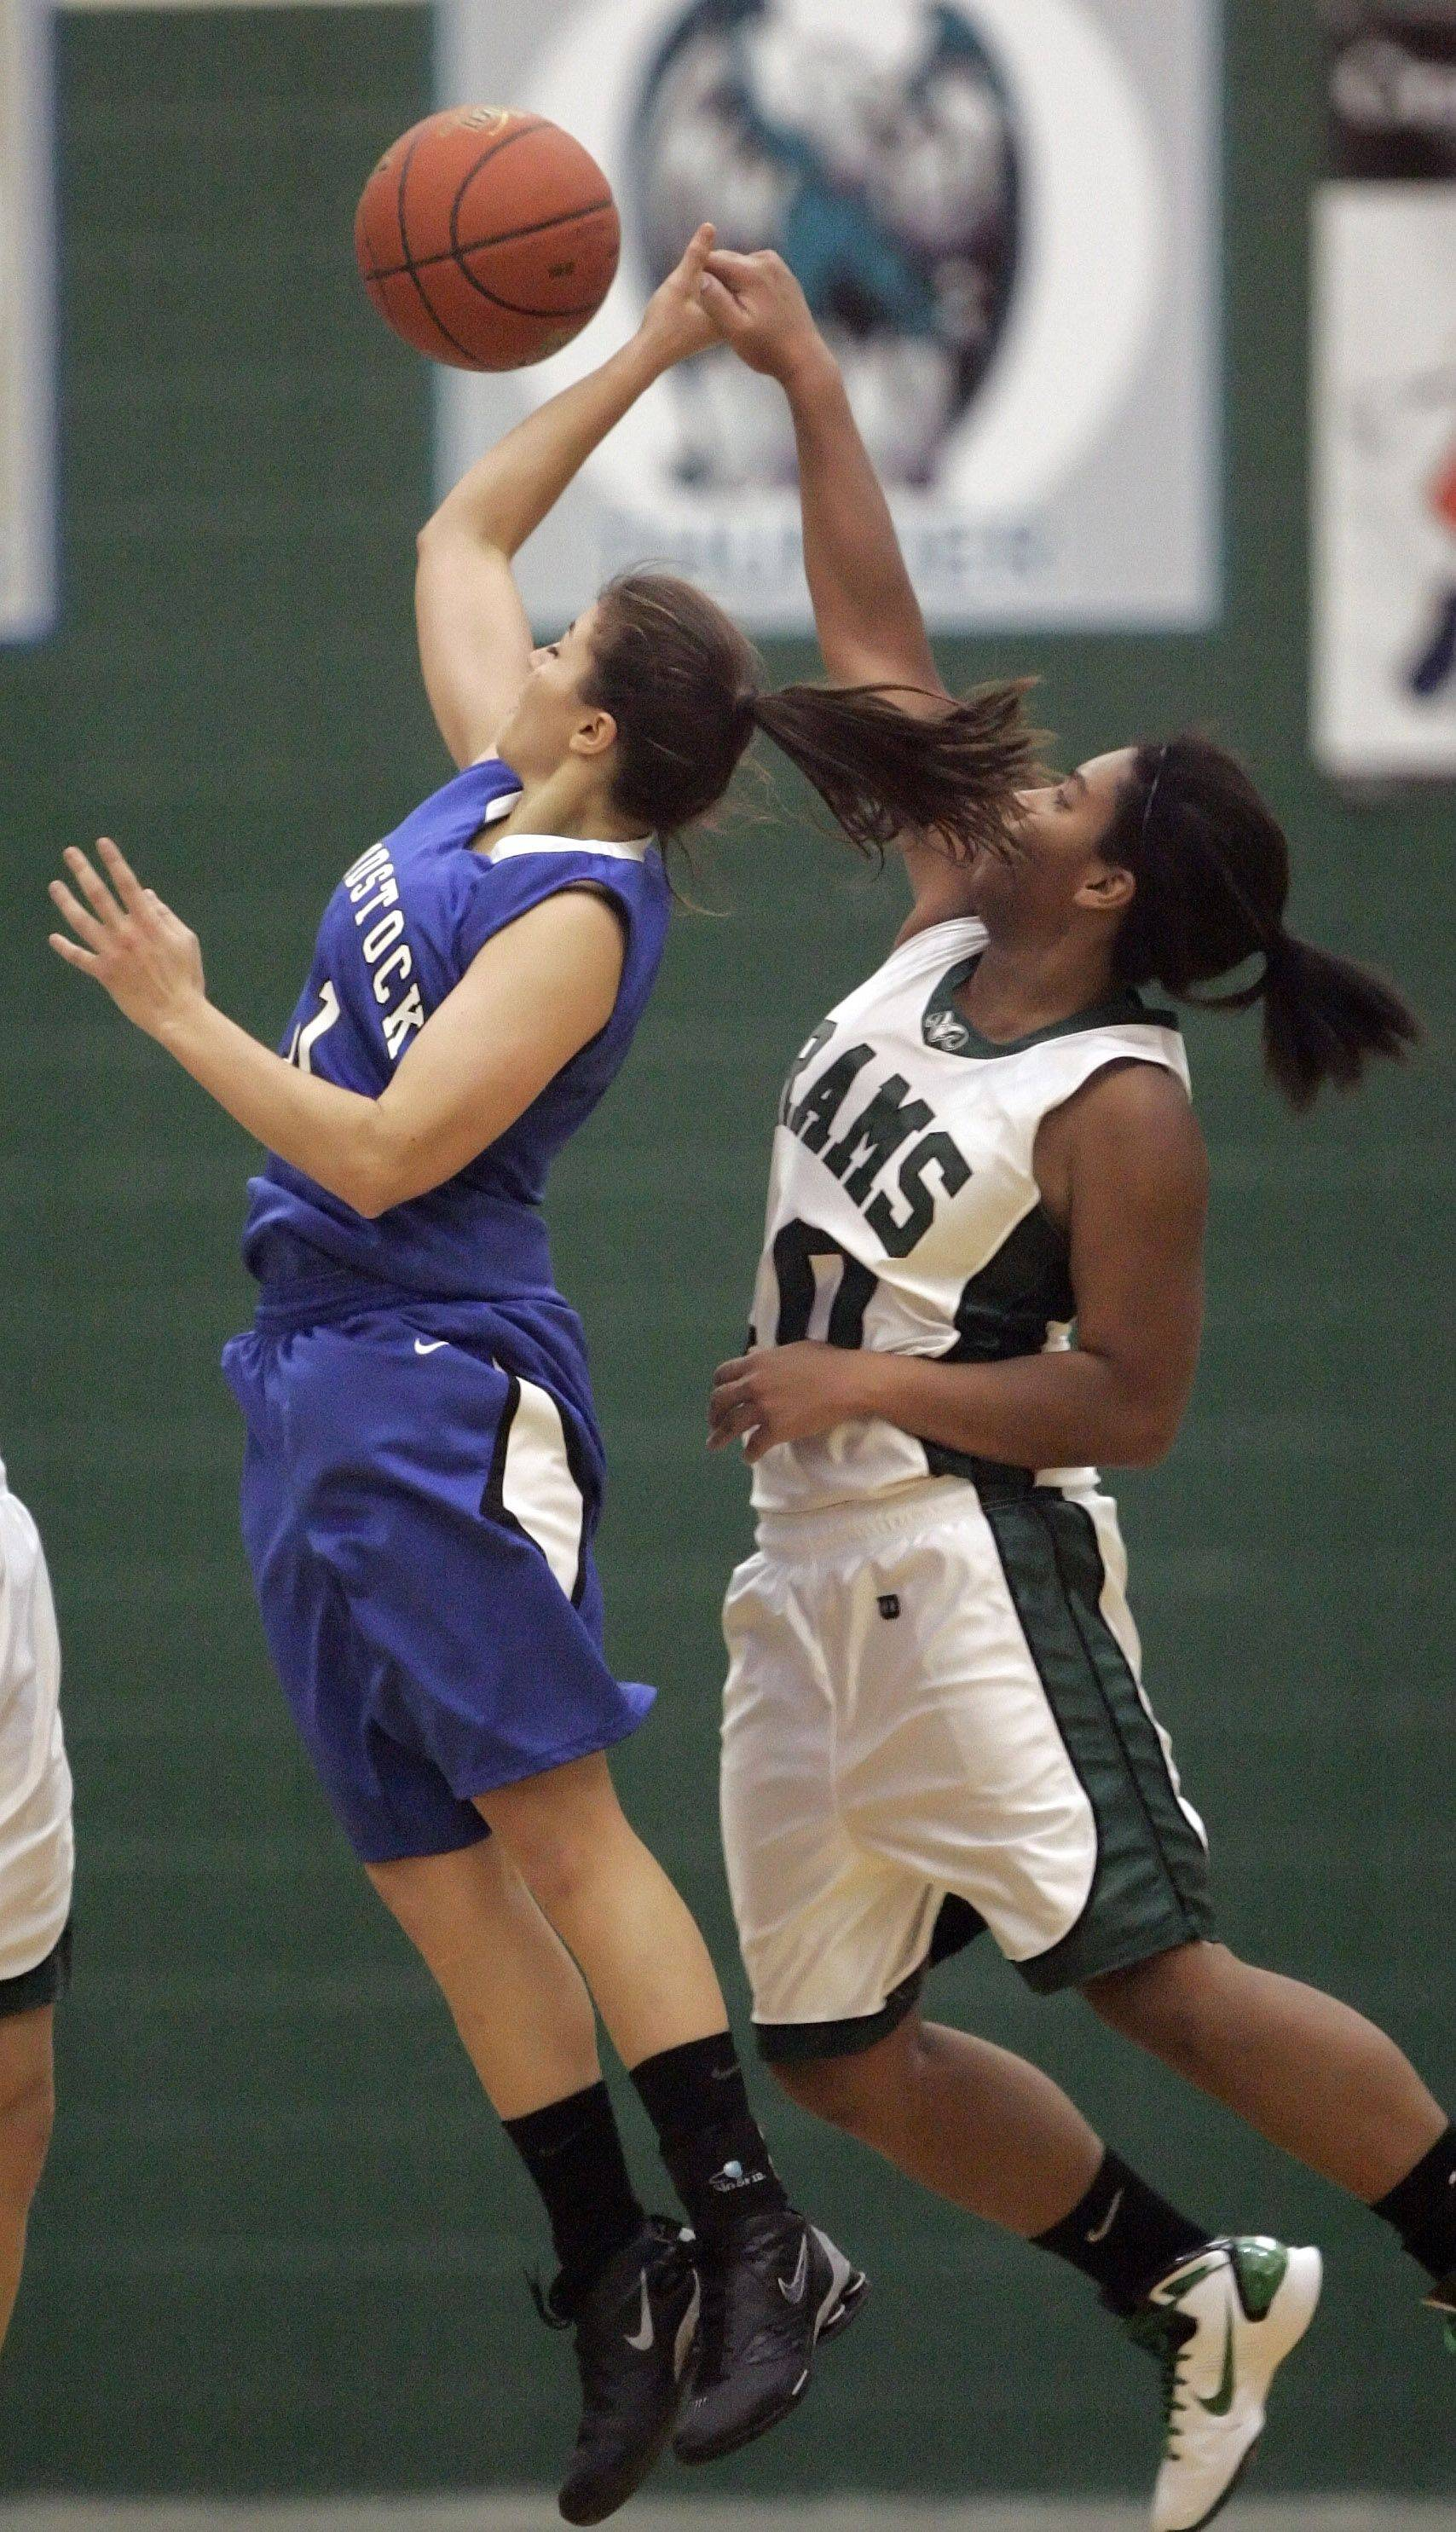 Grayslake Central's Alex Scarbro blocks the shoot of Woodstock's Odessa Peters .